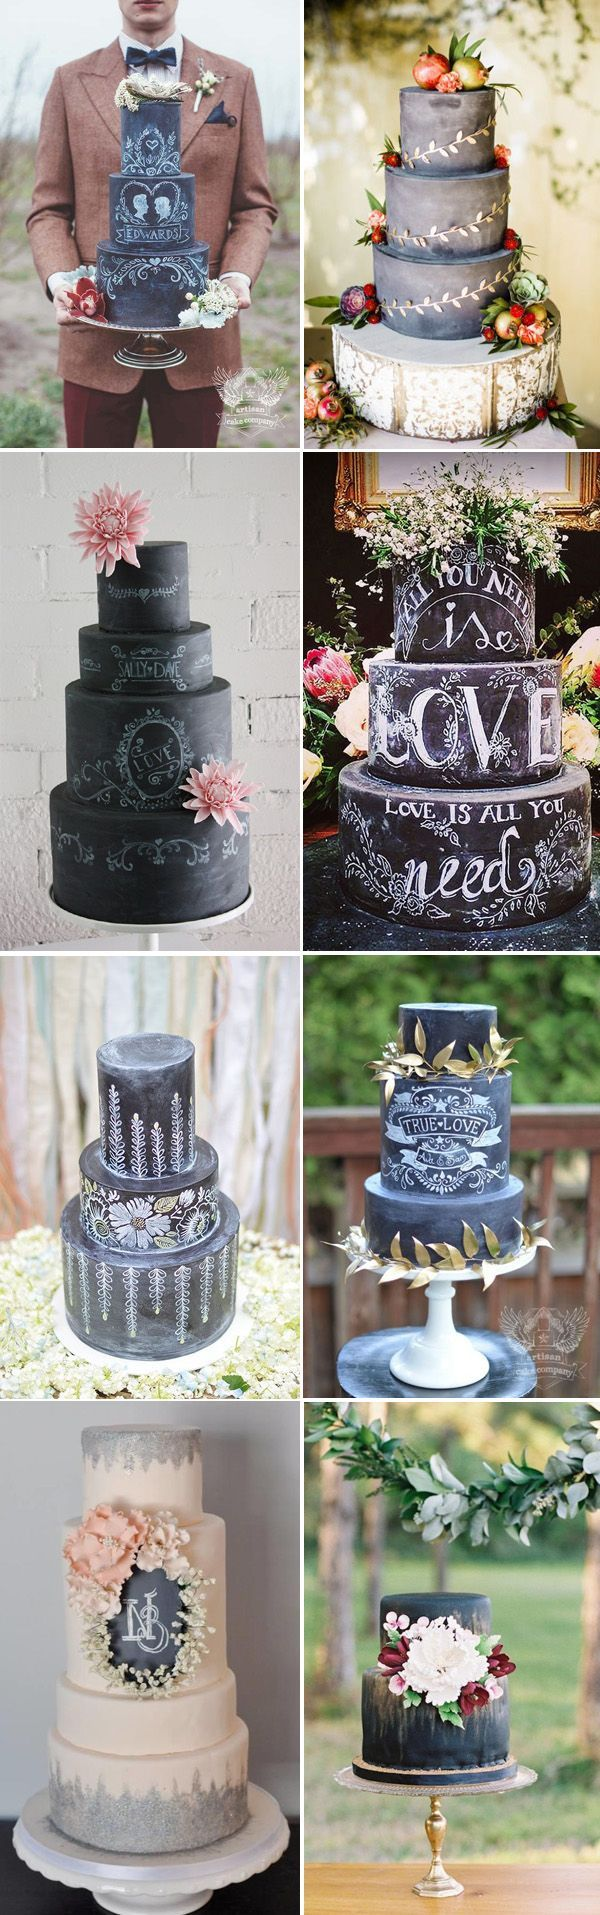 Rustic Wedding Cake Ideas - Black and White Chalkboard Wedding Cakes~ Don't forget personalized napkin to go with your gorgeous cake!!! www.napkinspersonalized.com